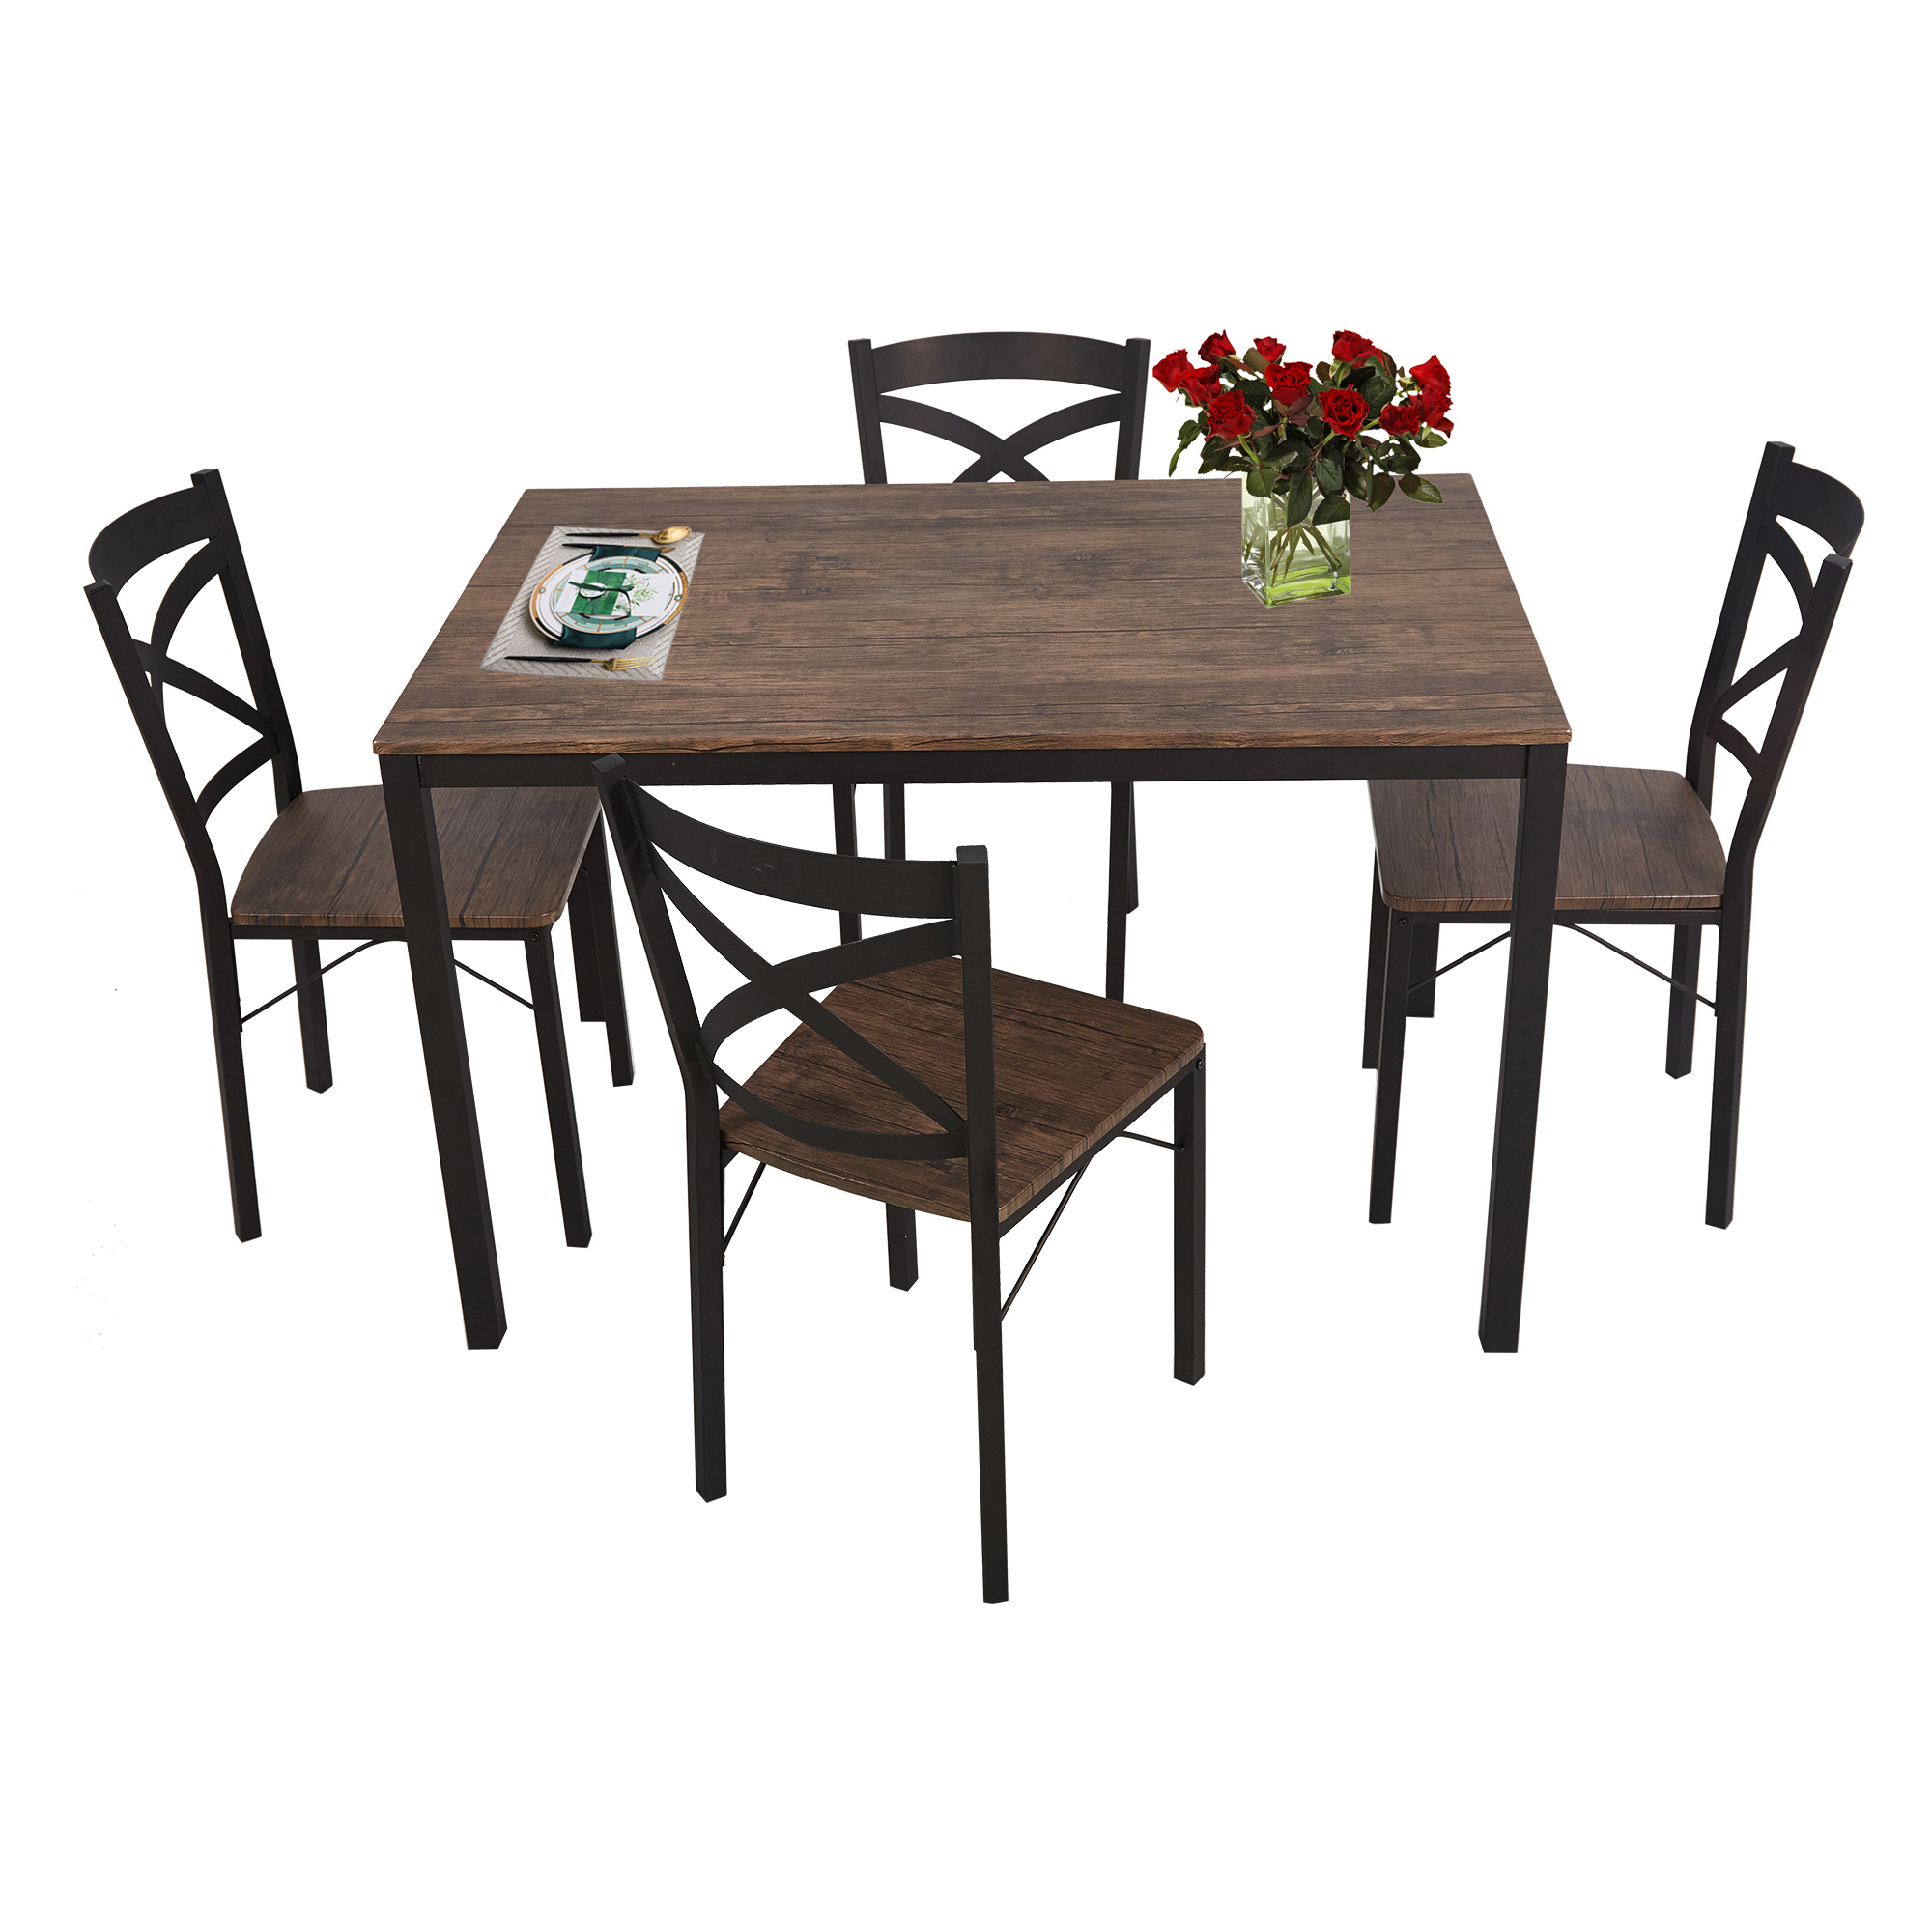 Karmas Product 5 Piece Dining Table Set for 4 Chairs Wood and Metal Kitchen Table Modern and Sleek Dinette